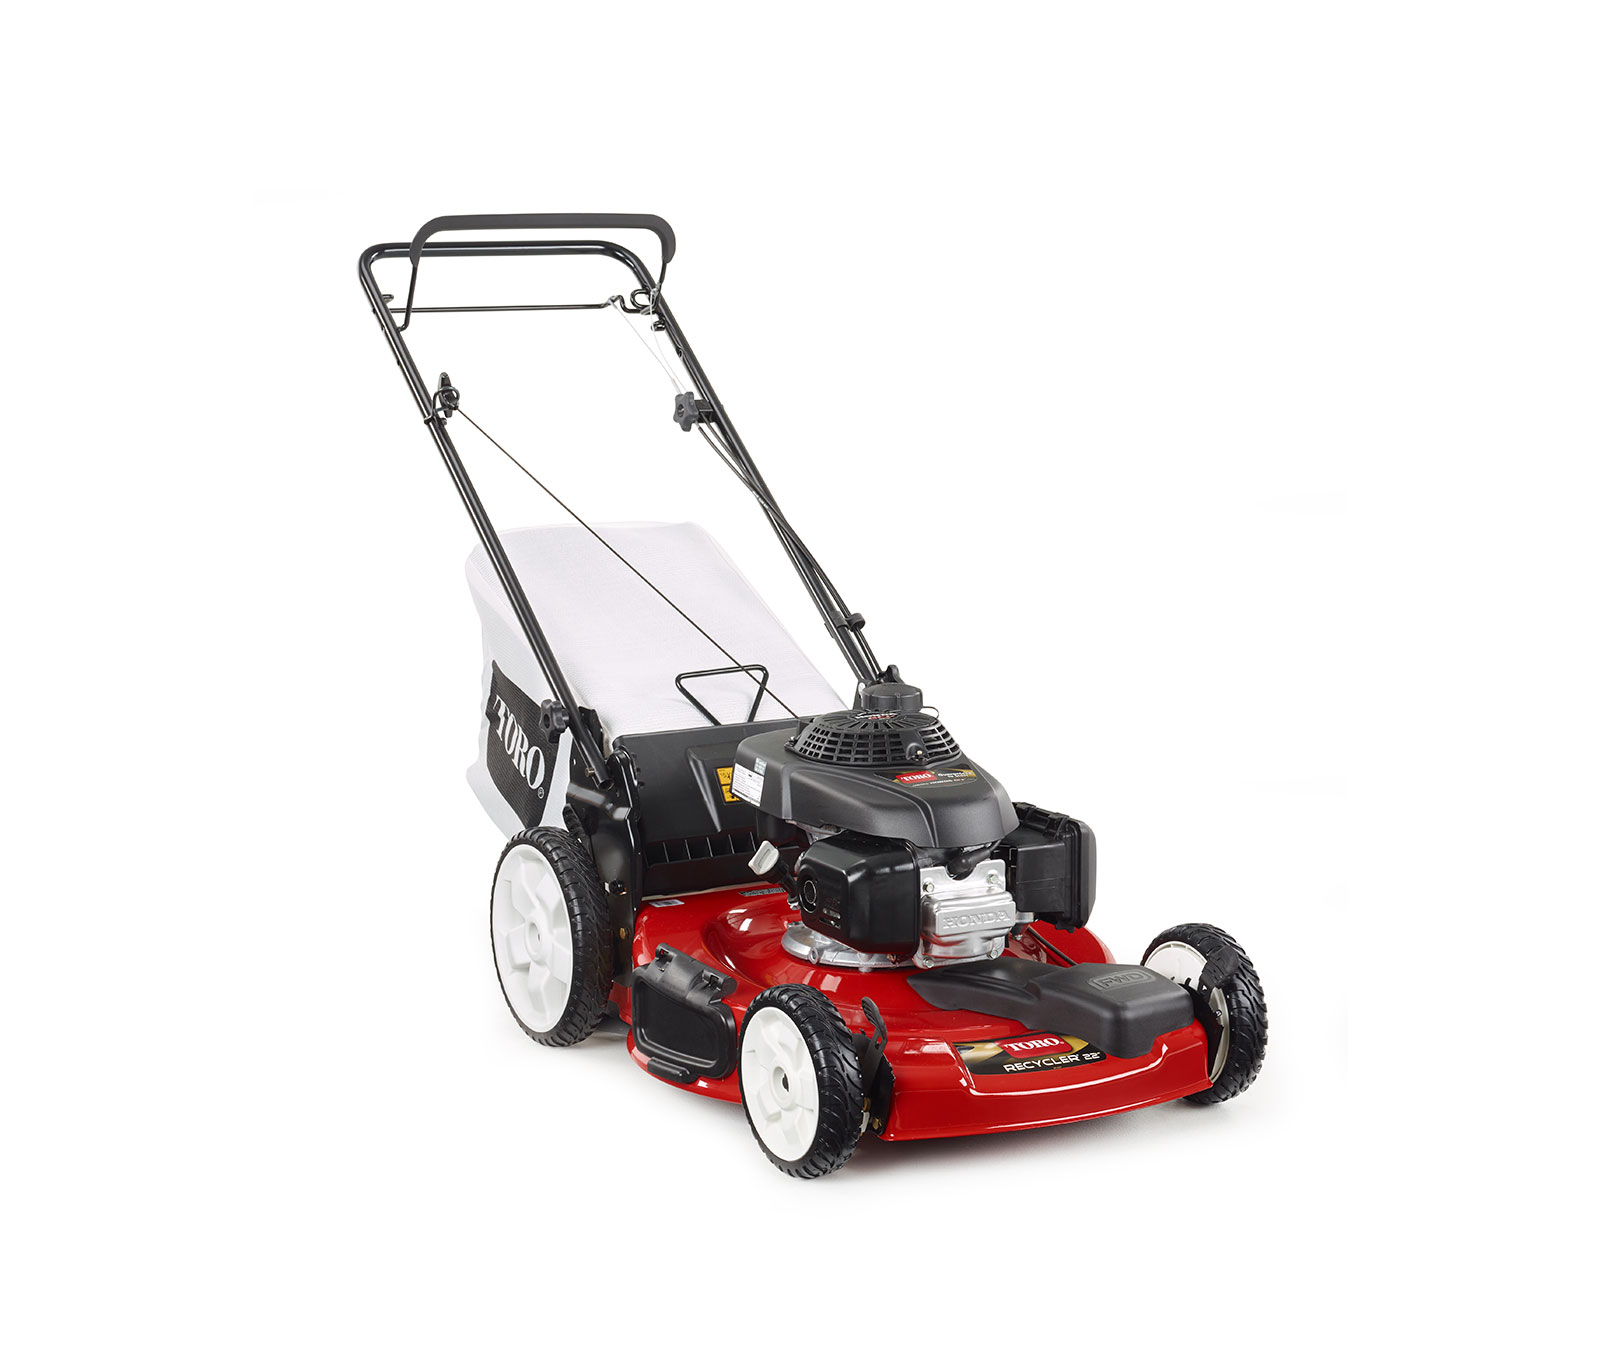 Toro Gcv160 Manual Waterscape Property Layout Along With Honda Motorcycle Wiring Diagrams Array 22 56 Cm Variable Speed High Wheel Lawn Mower Rh